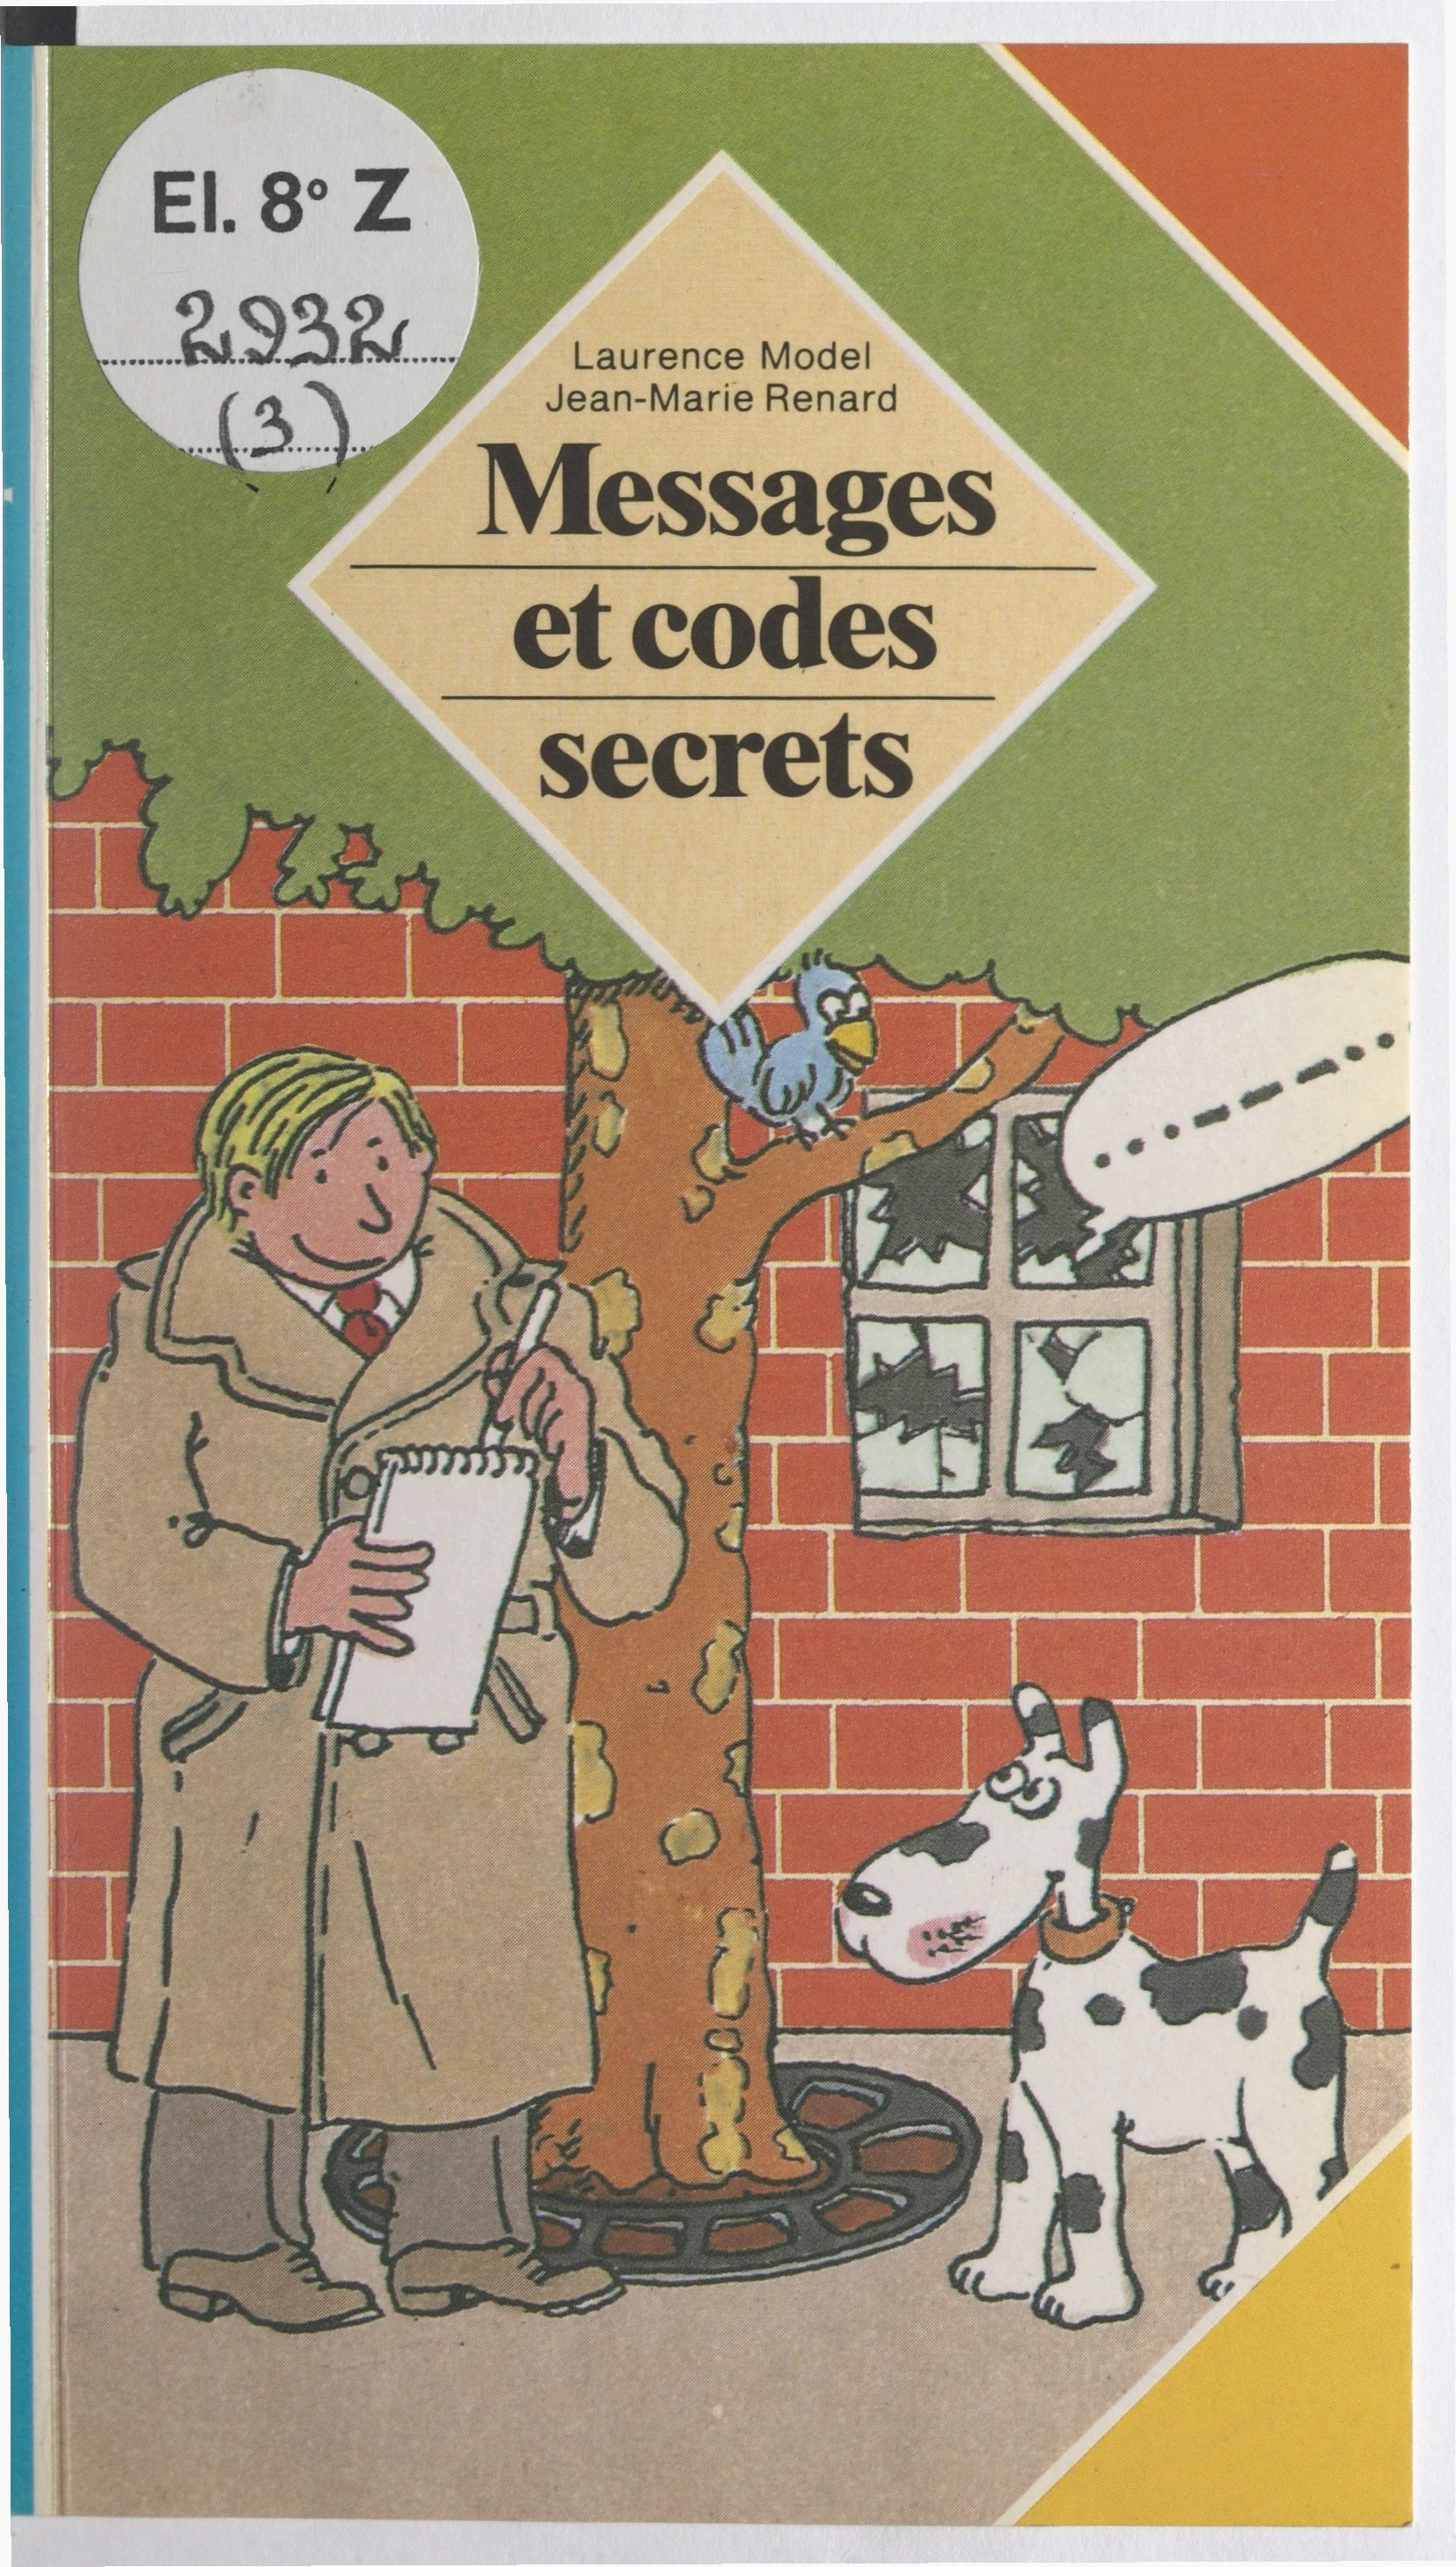 Messages et codes secrets